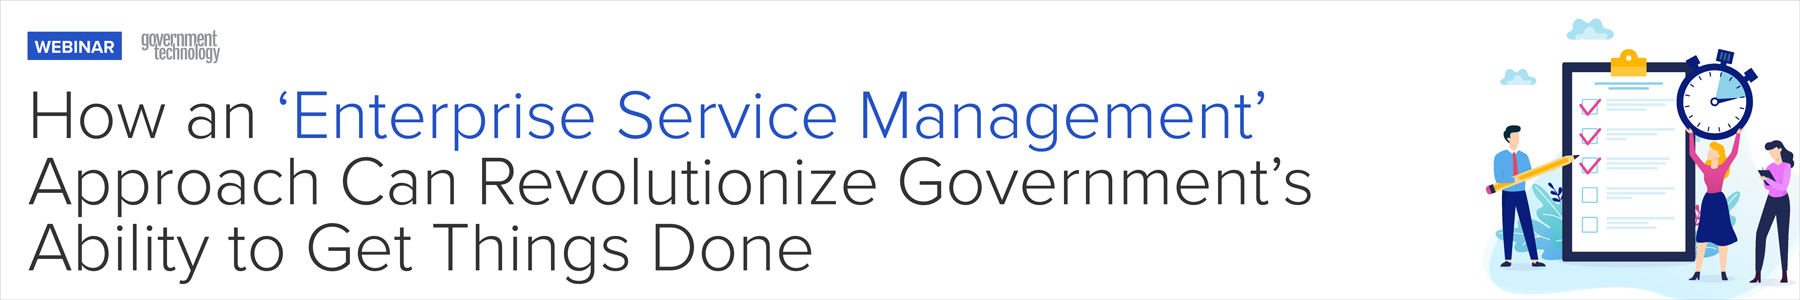 How an Enterprise Service Management Approach Can Revolutionize Government's Ability to Get Things Done